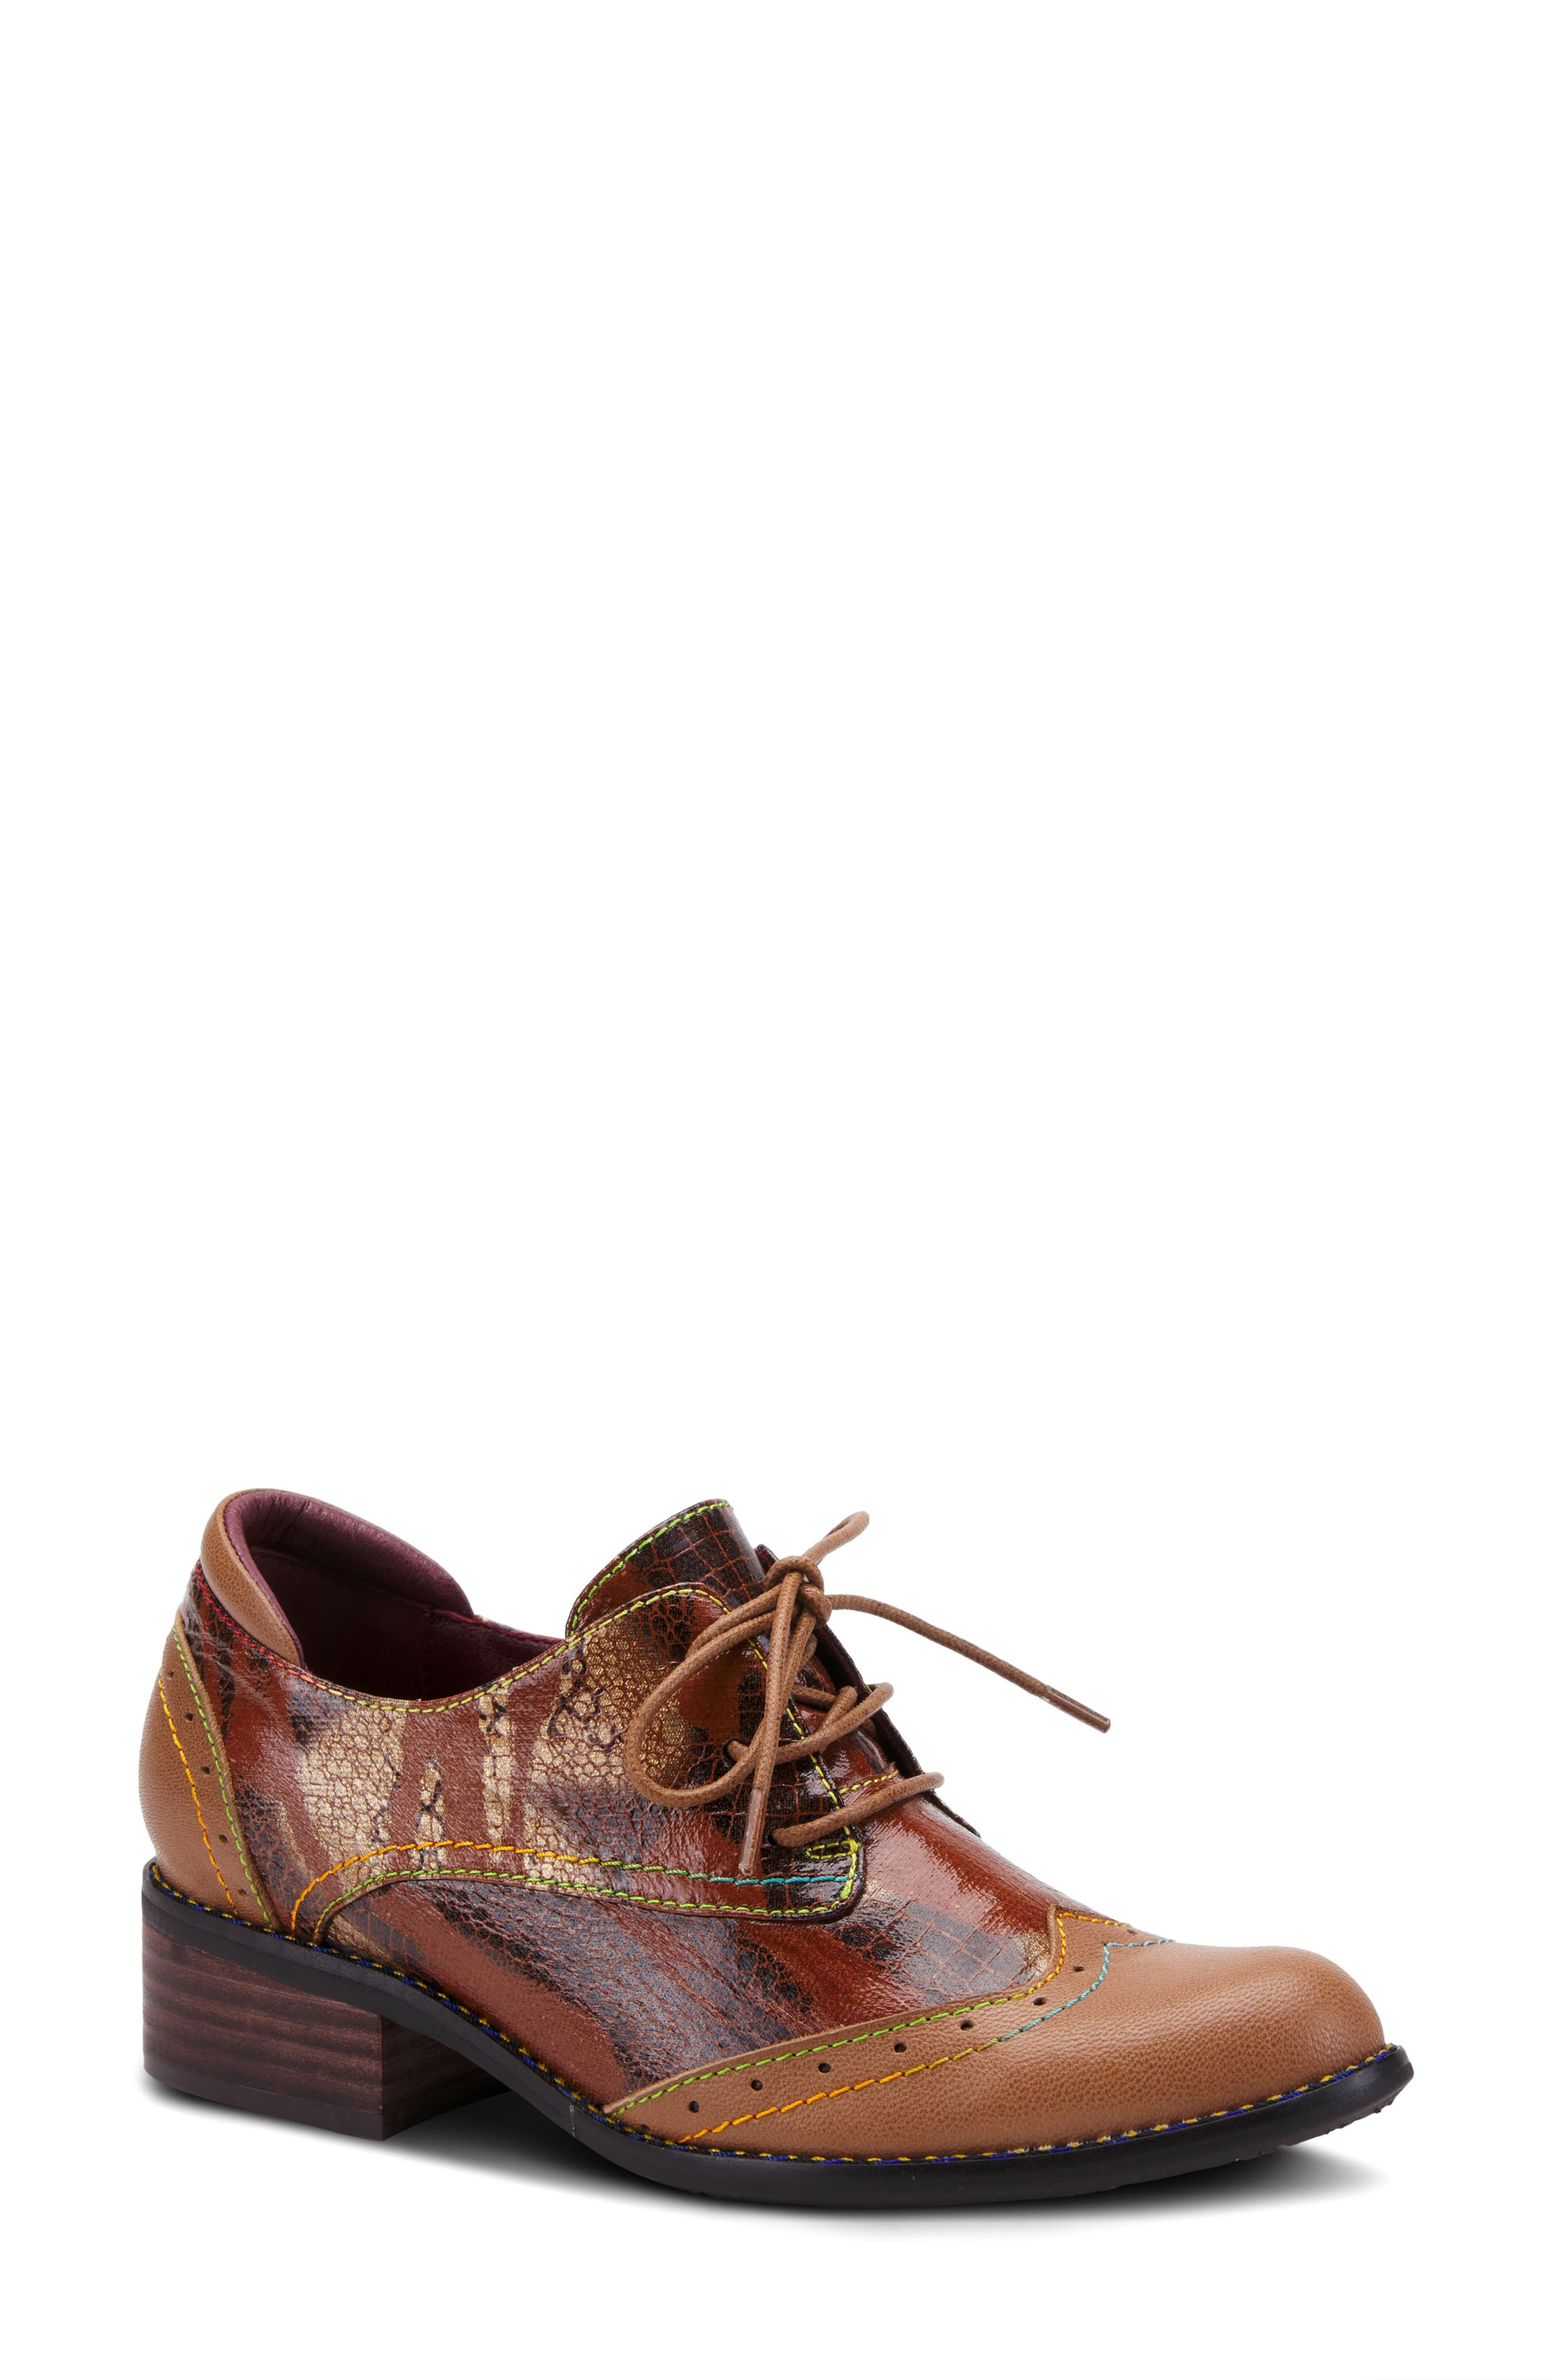 Rainbow-hued topstitching and shiny snake embossing dial up the drama on this lace-up oxford fitted with a comfortably cushioned footbed. Style Name:L\\\'Artiste Elvie Oxford (Women). Style Number: 6117435. Available in stores.